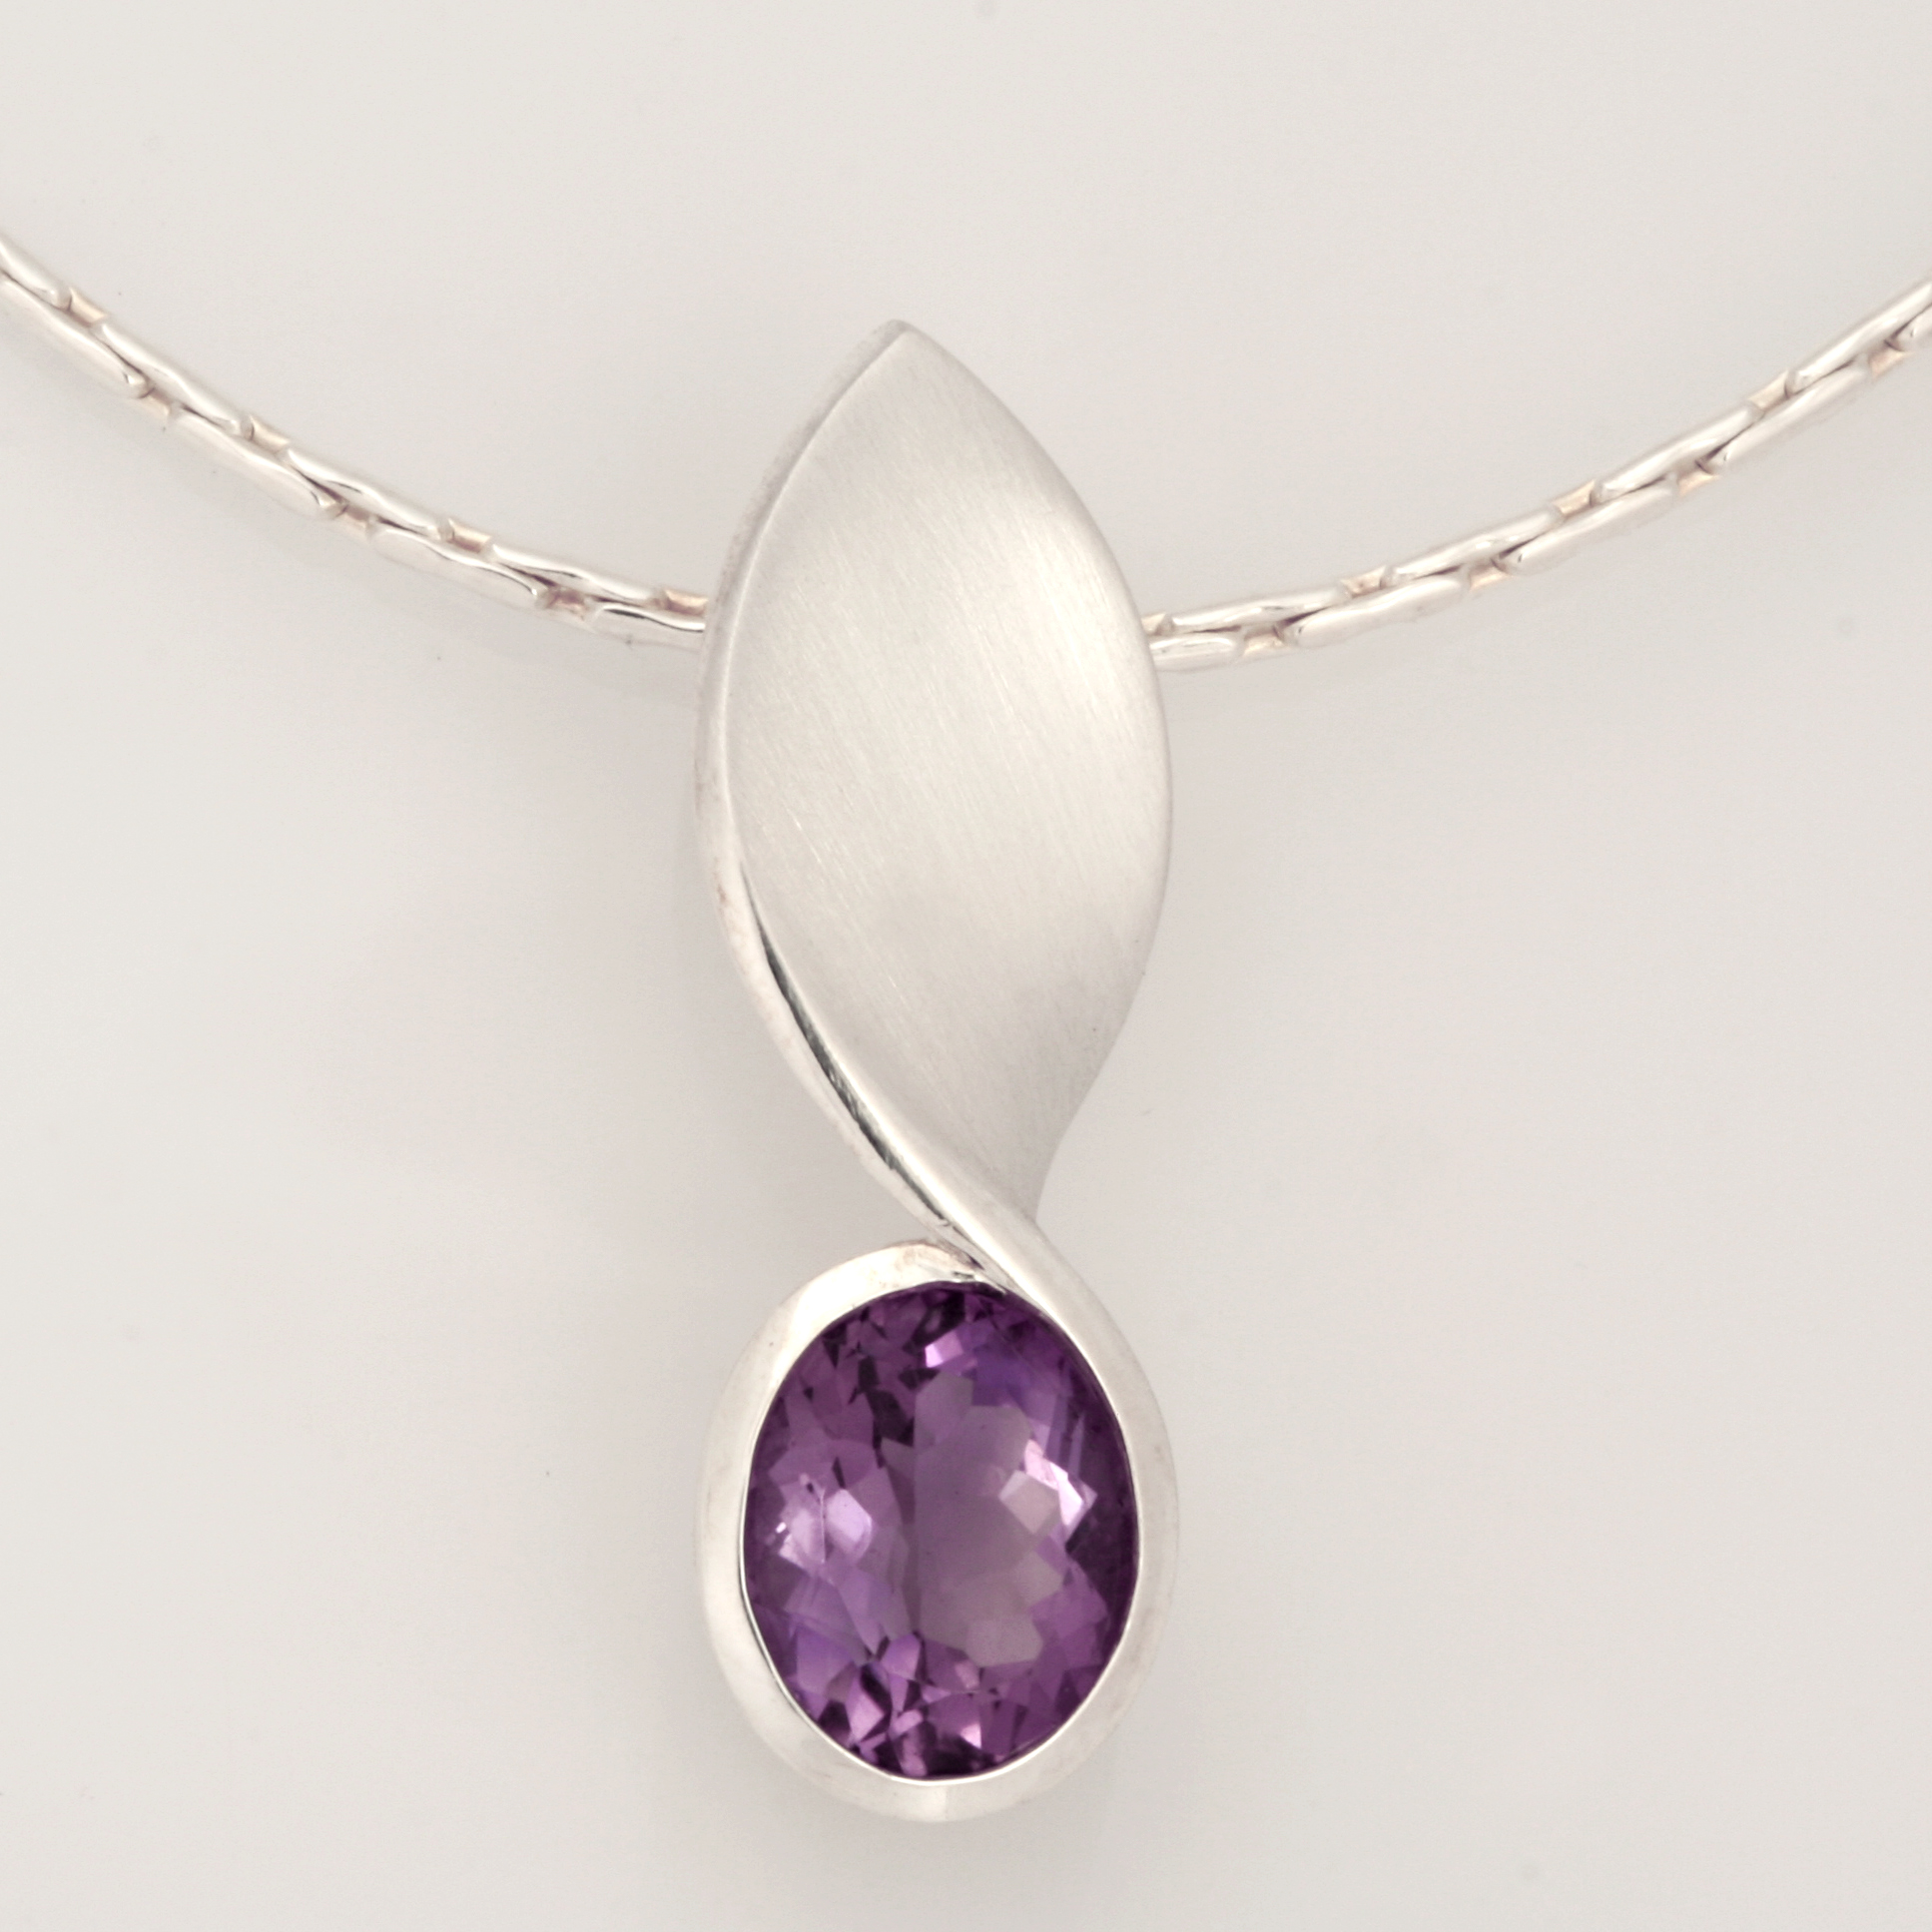 P097  Sterling silver pendant featuring an oval amethyst. $260 pendant only